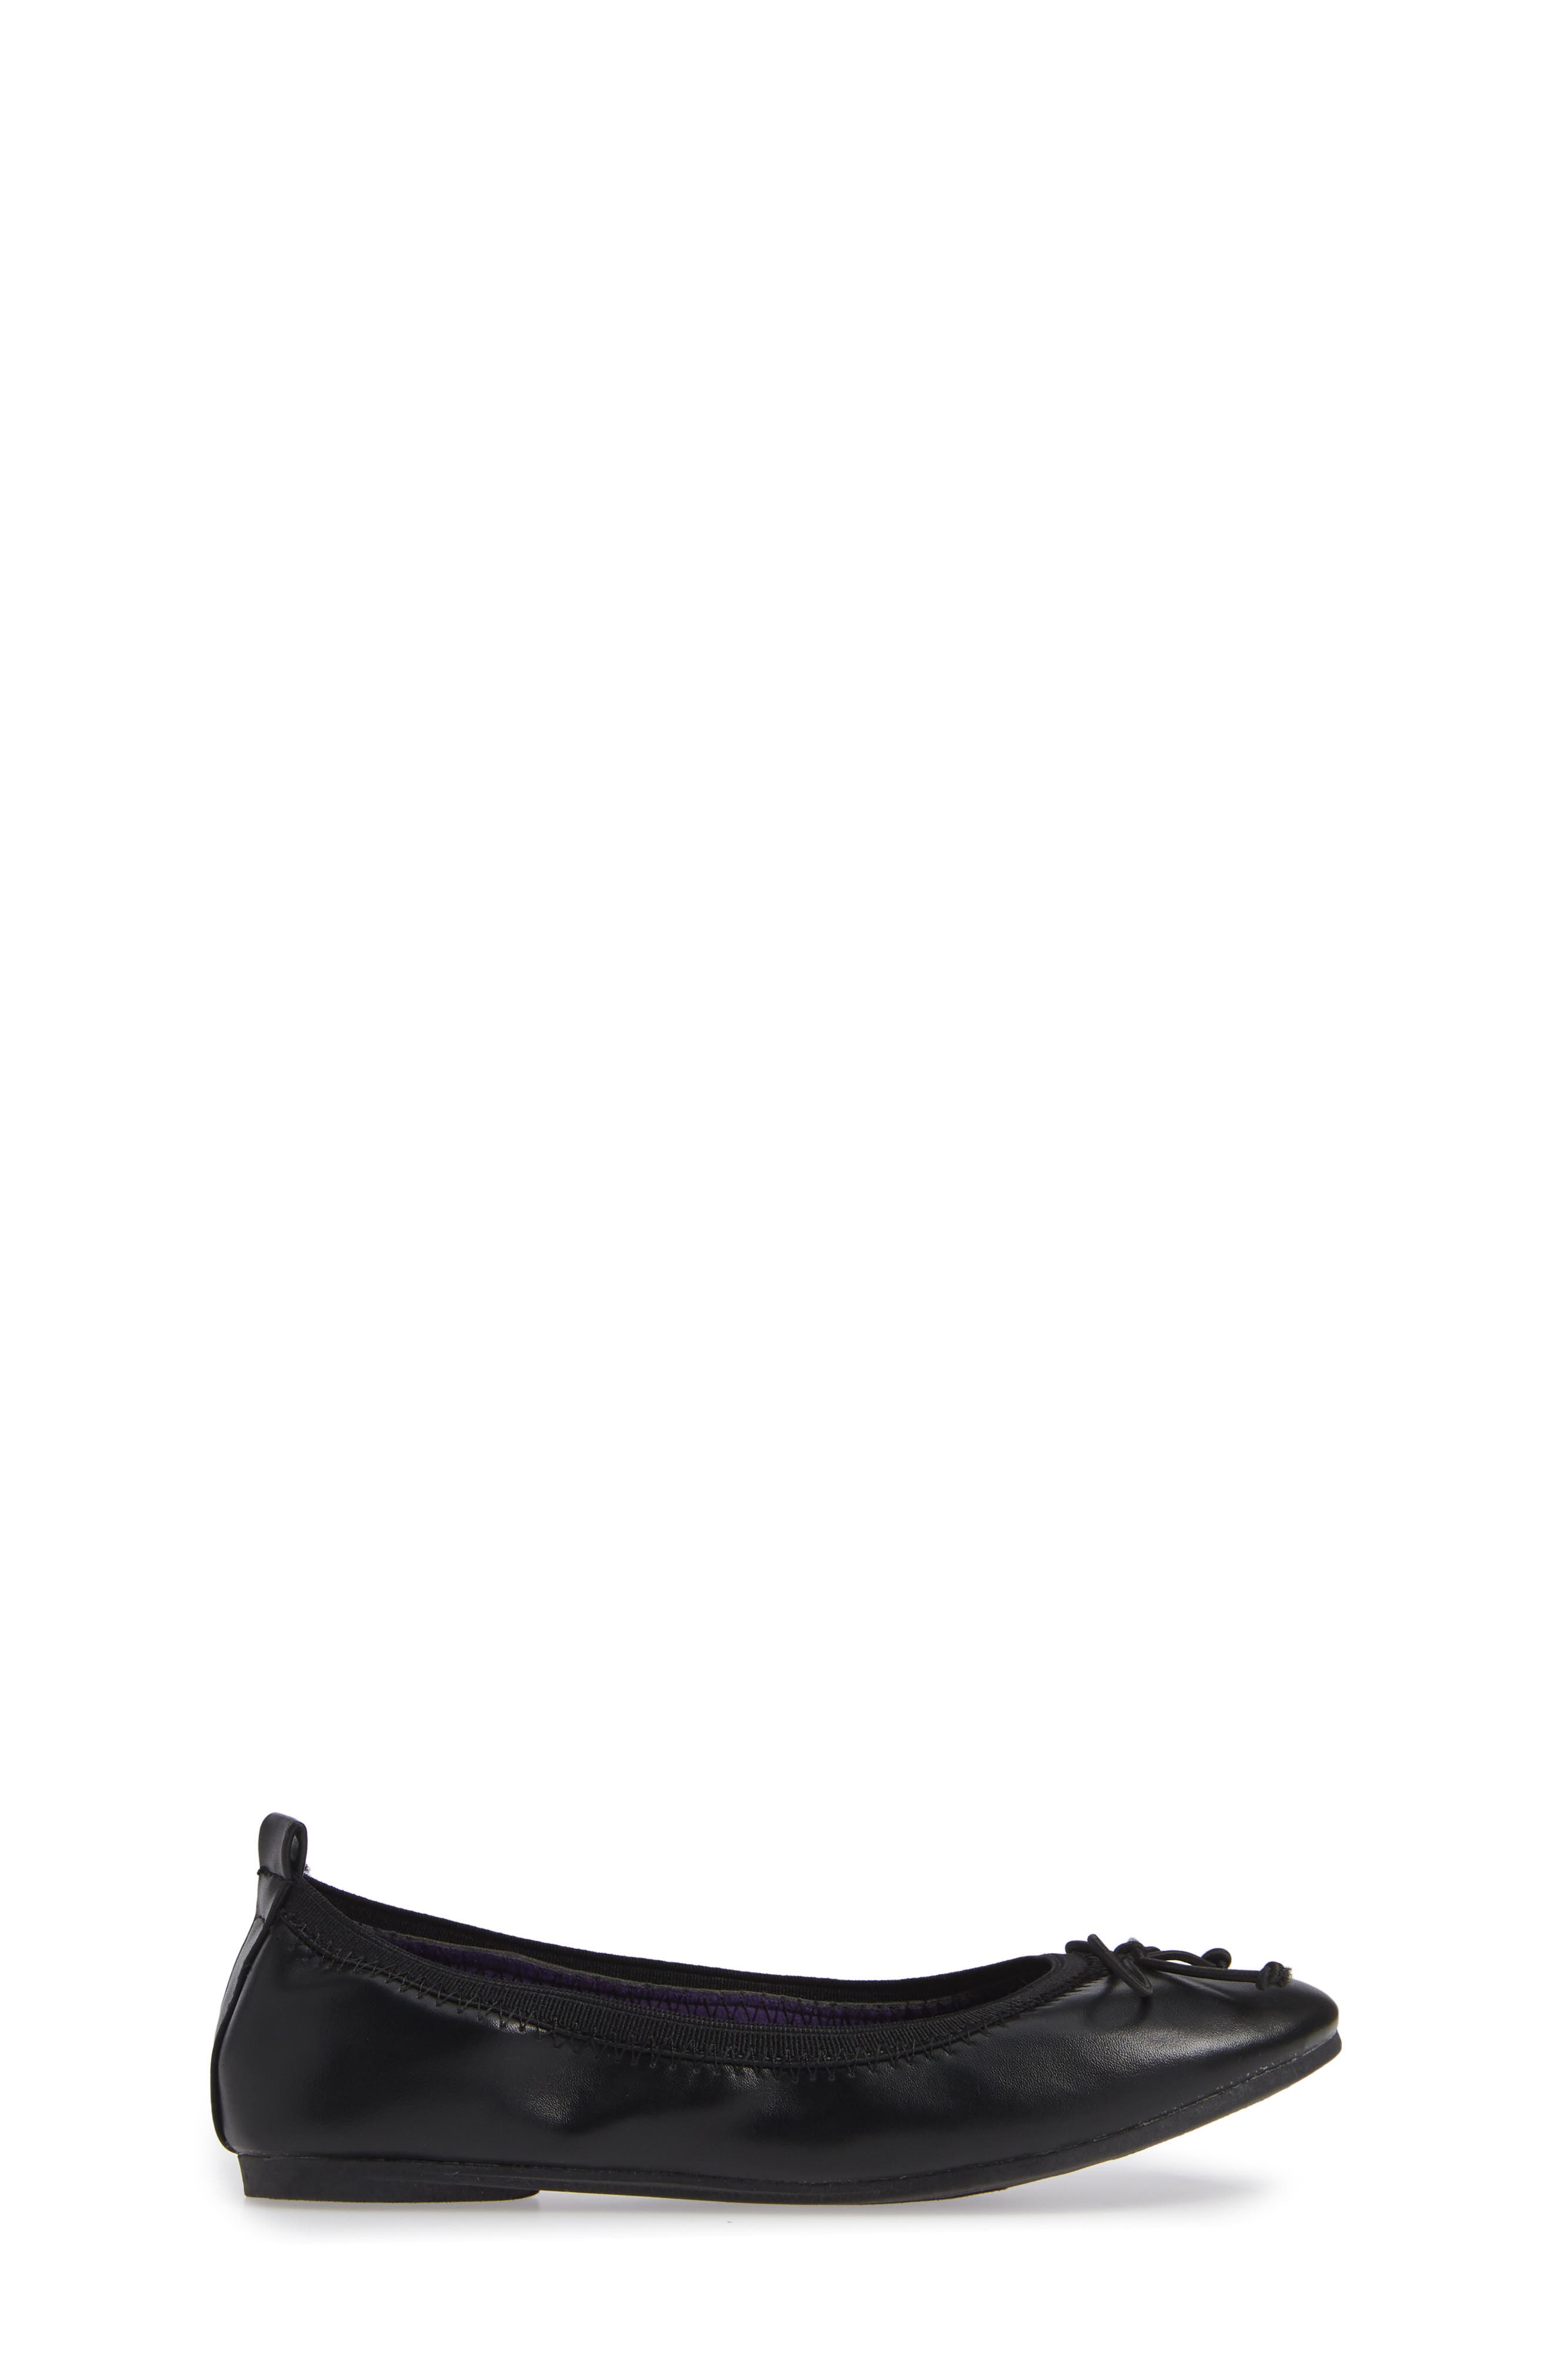 Copy Tap Ballet Flat,                             Alternate thumbnail 3, color,                             BLACK